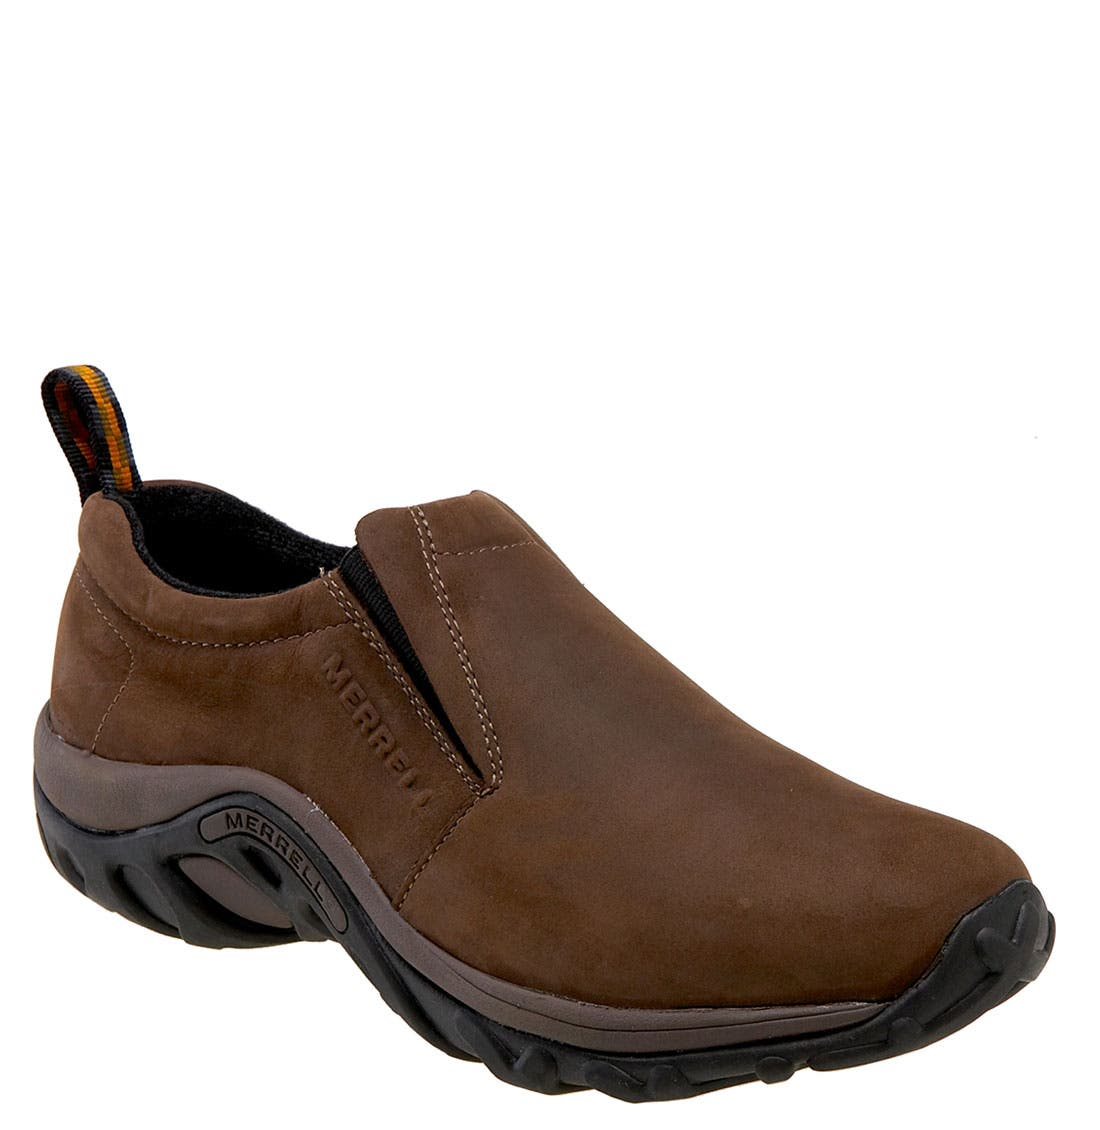 MERRELL 'Jungle Moc - Nubuck' Slip-On, Main, color, Brown